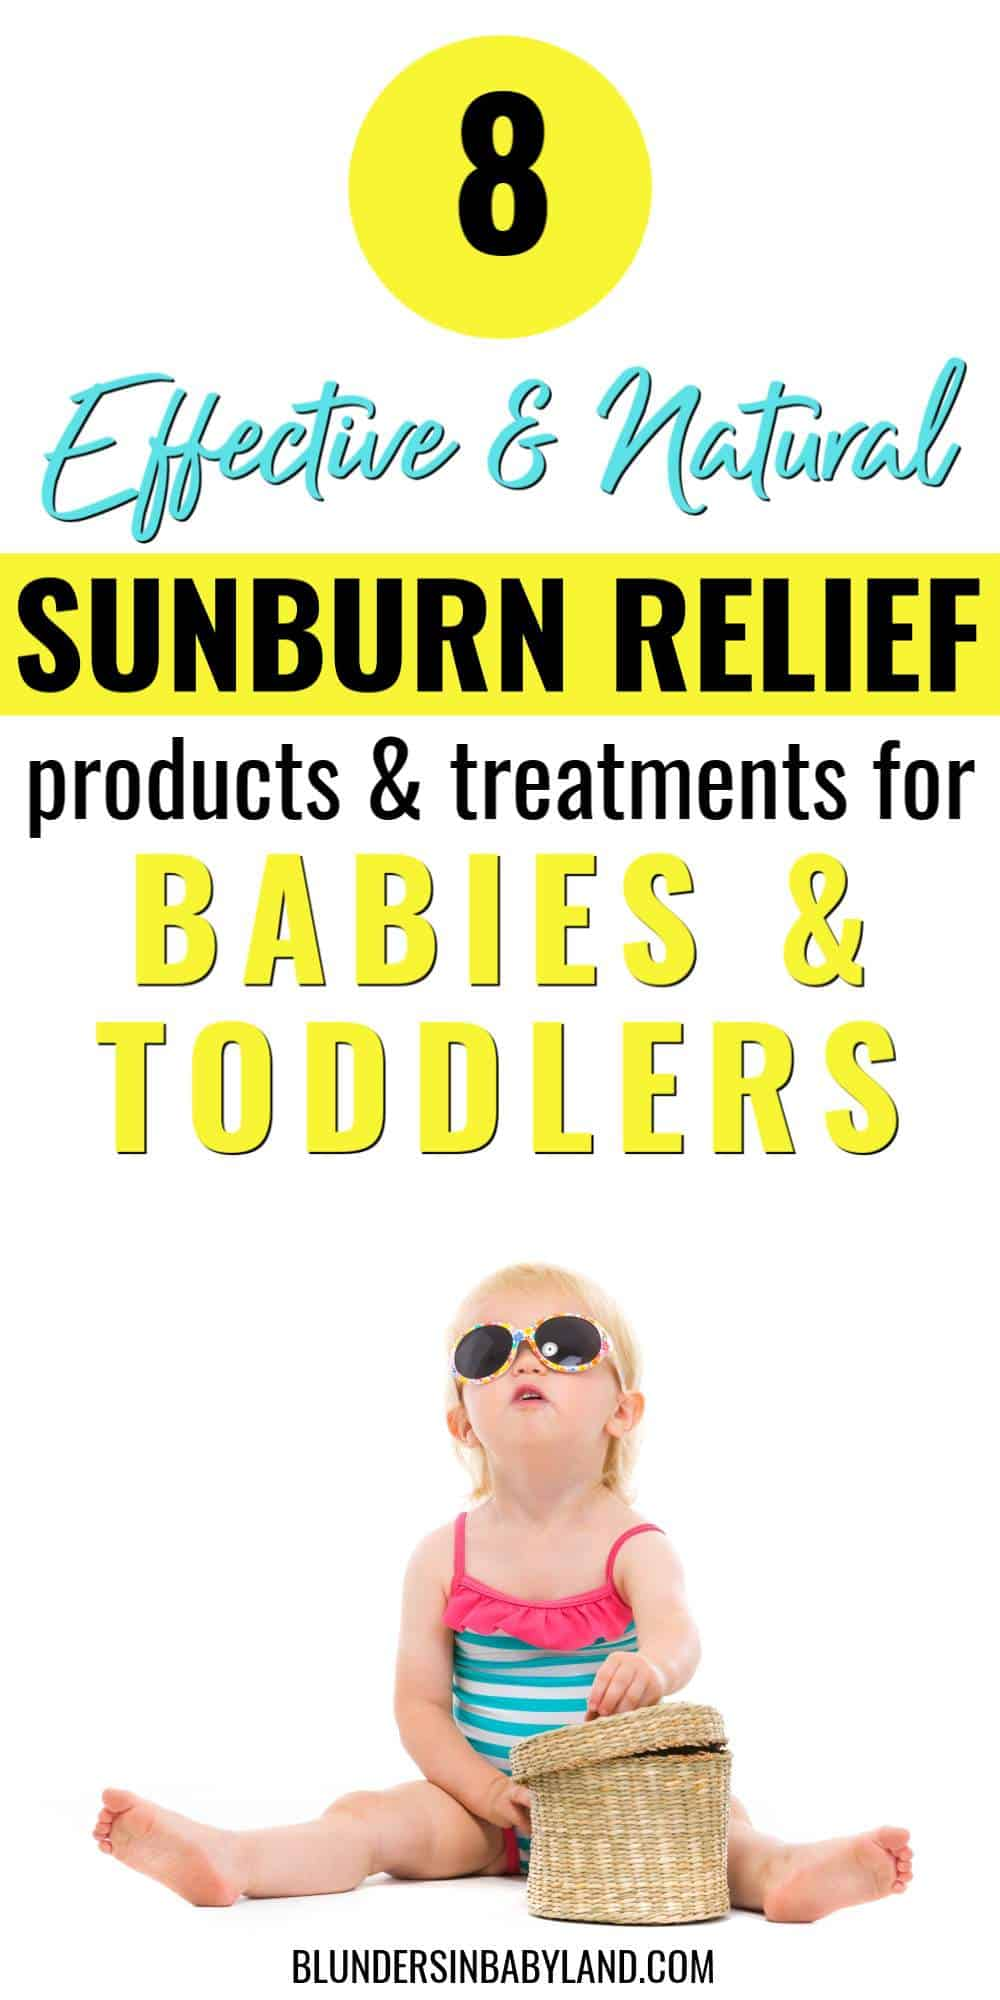 Sunburn Remedies for Babies and Toddlers  - Sunburn Relief for Babies and Toddlers